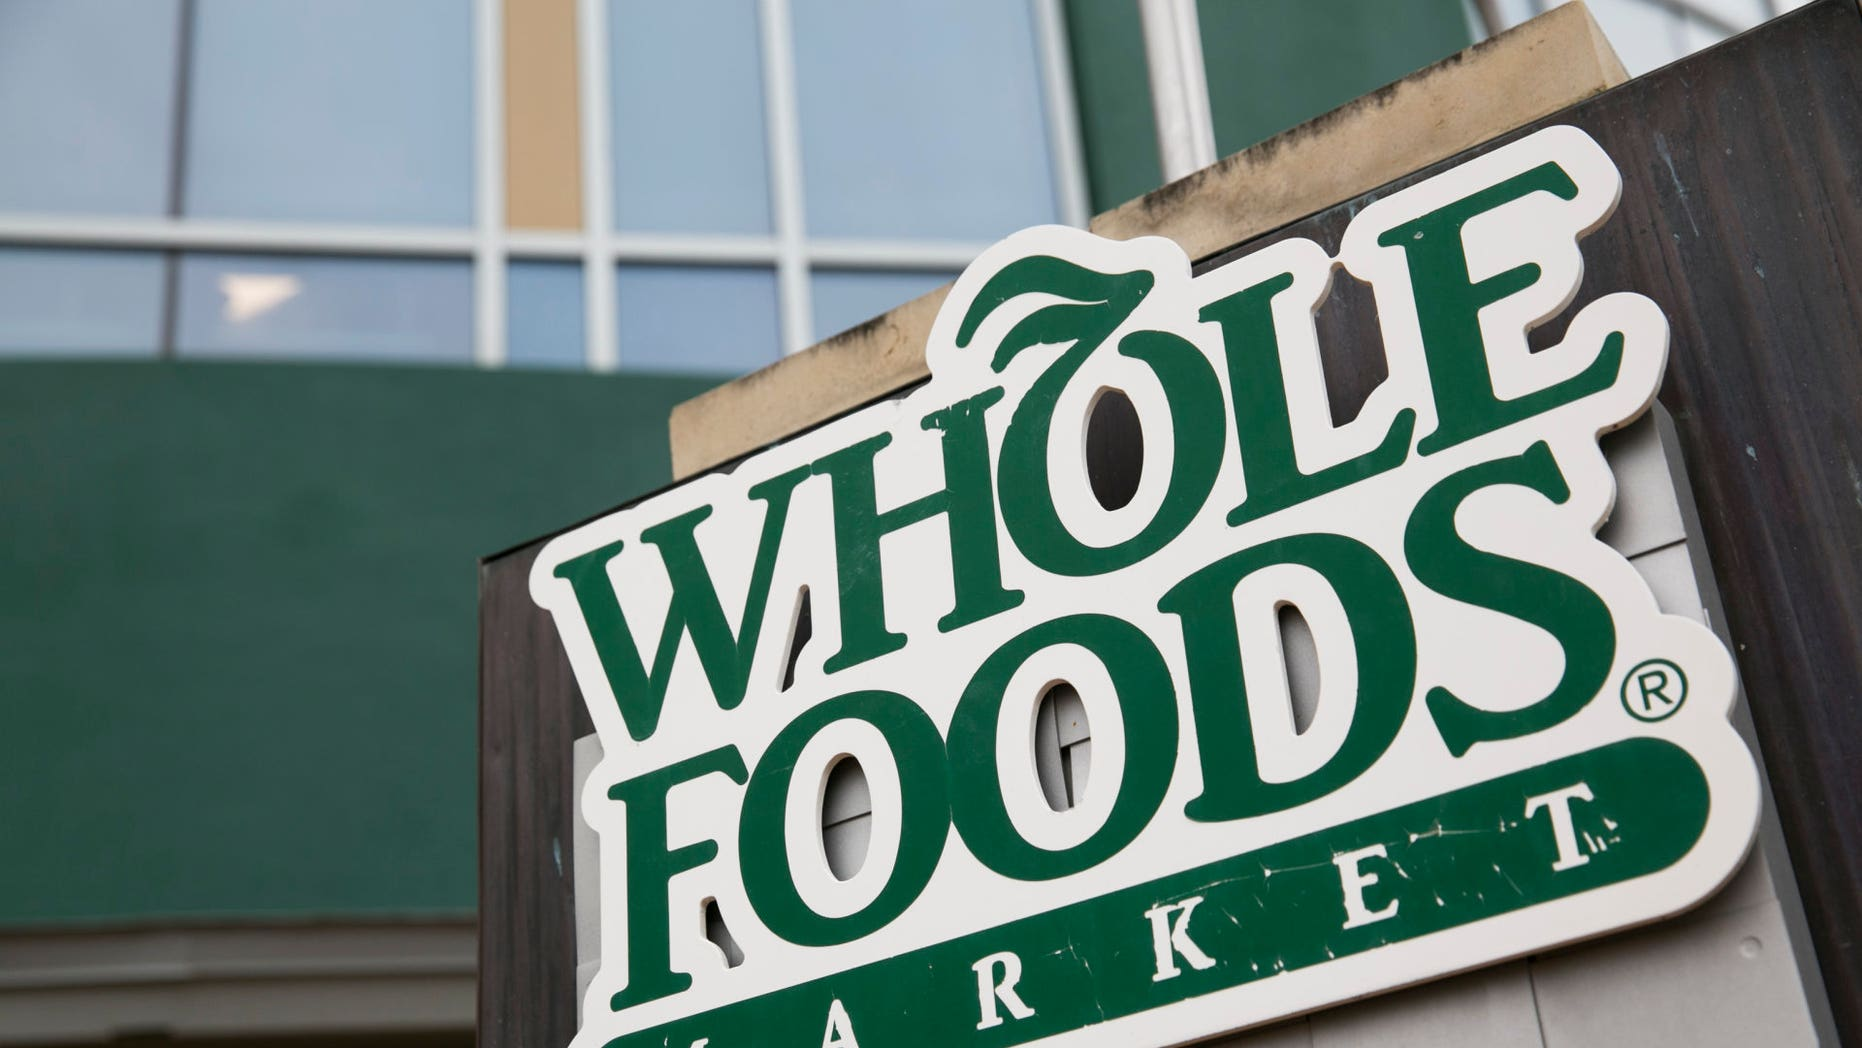 A Whole Foods store fired a security team that banned a 70-year-old customer. Photo by Kristoffer Tripplaar (Sipa via AP Images)